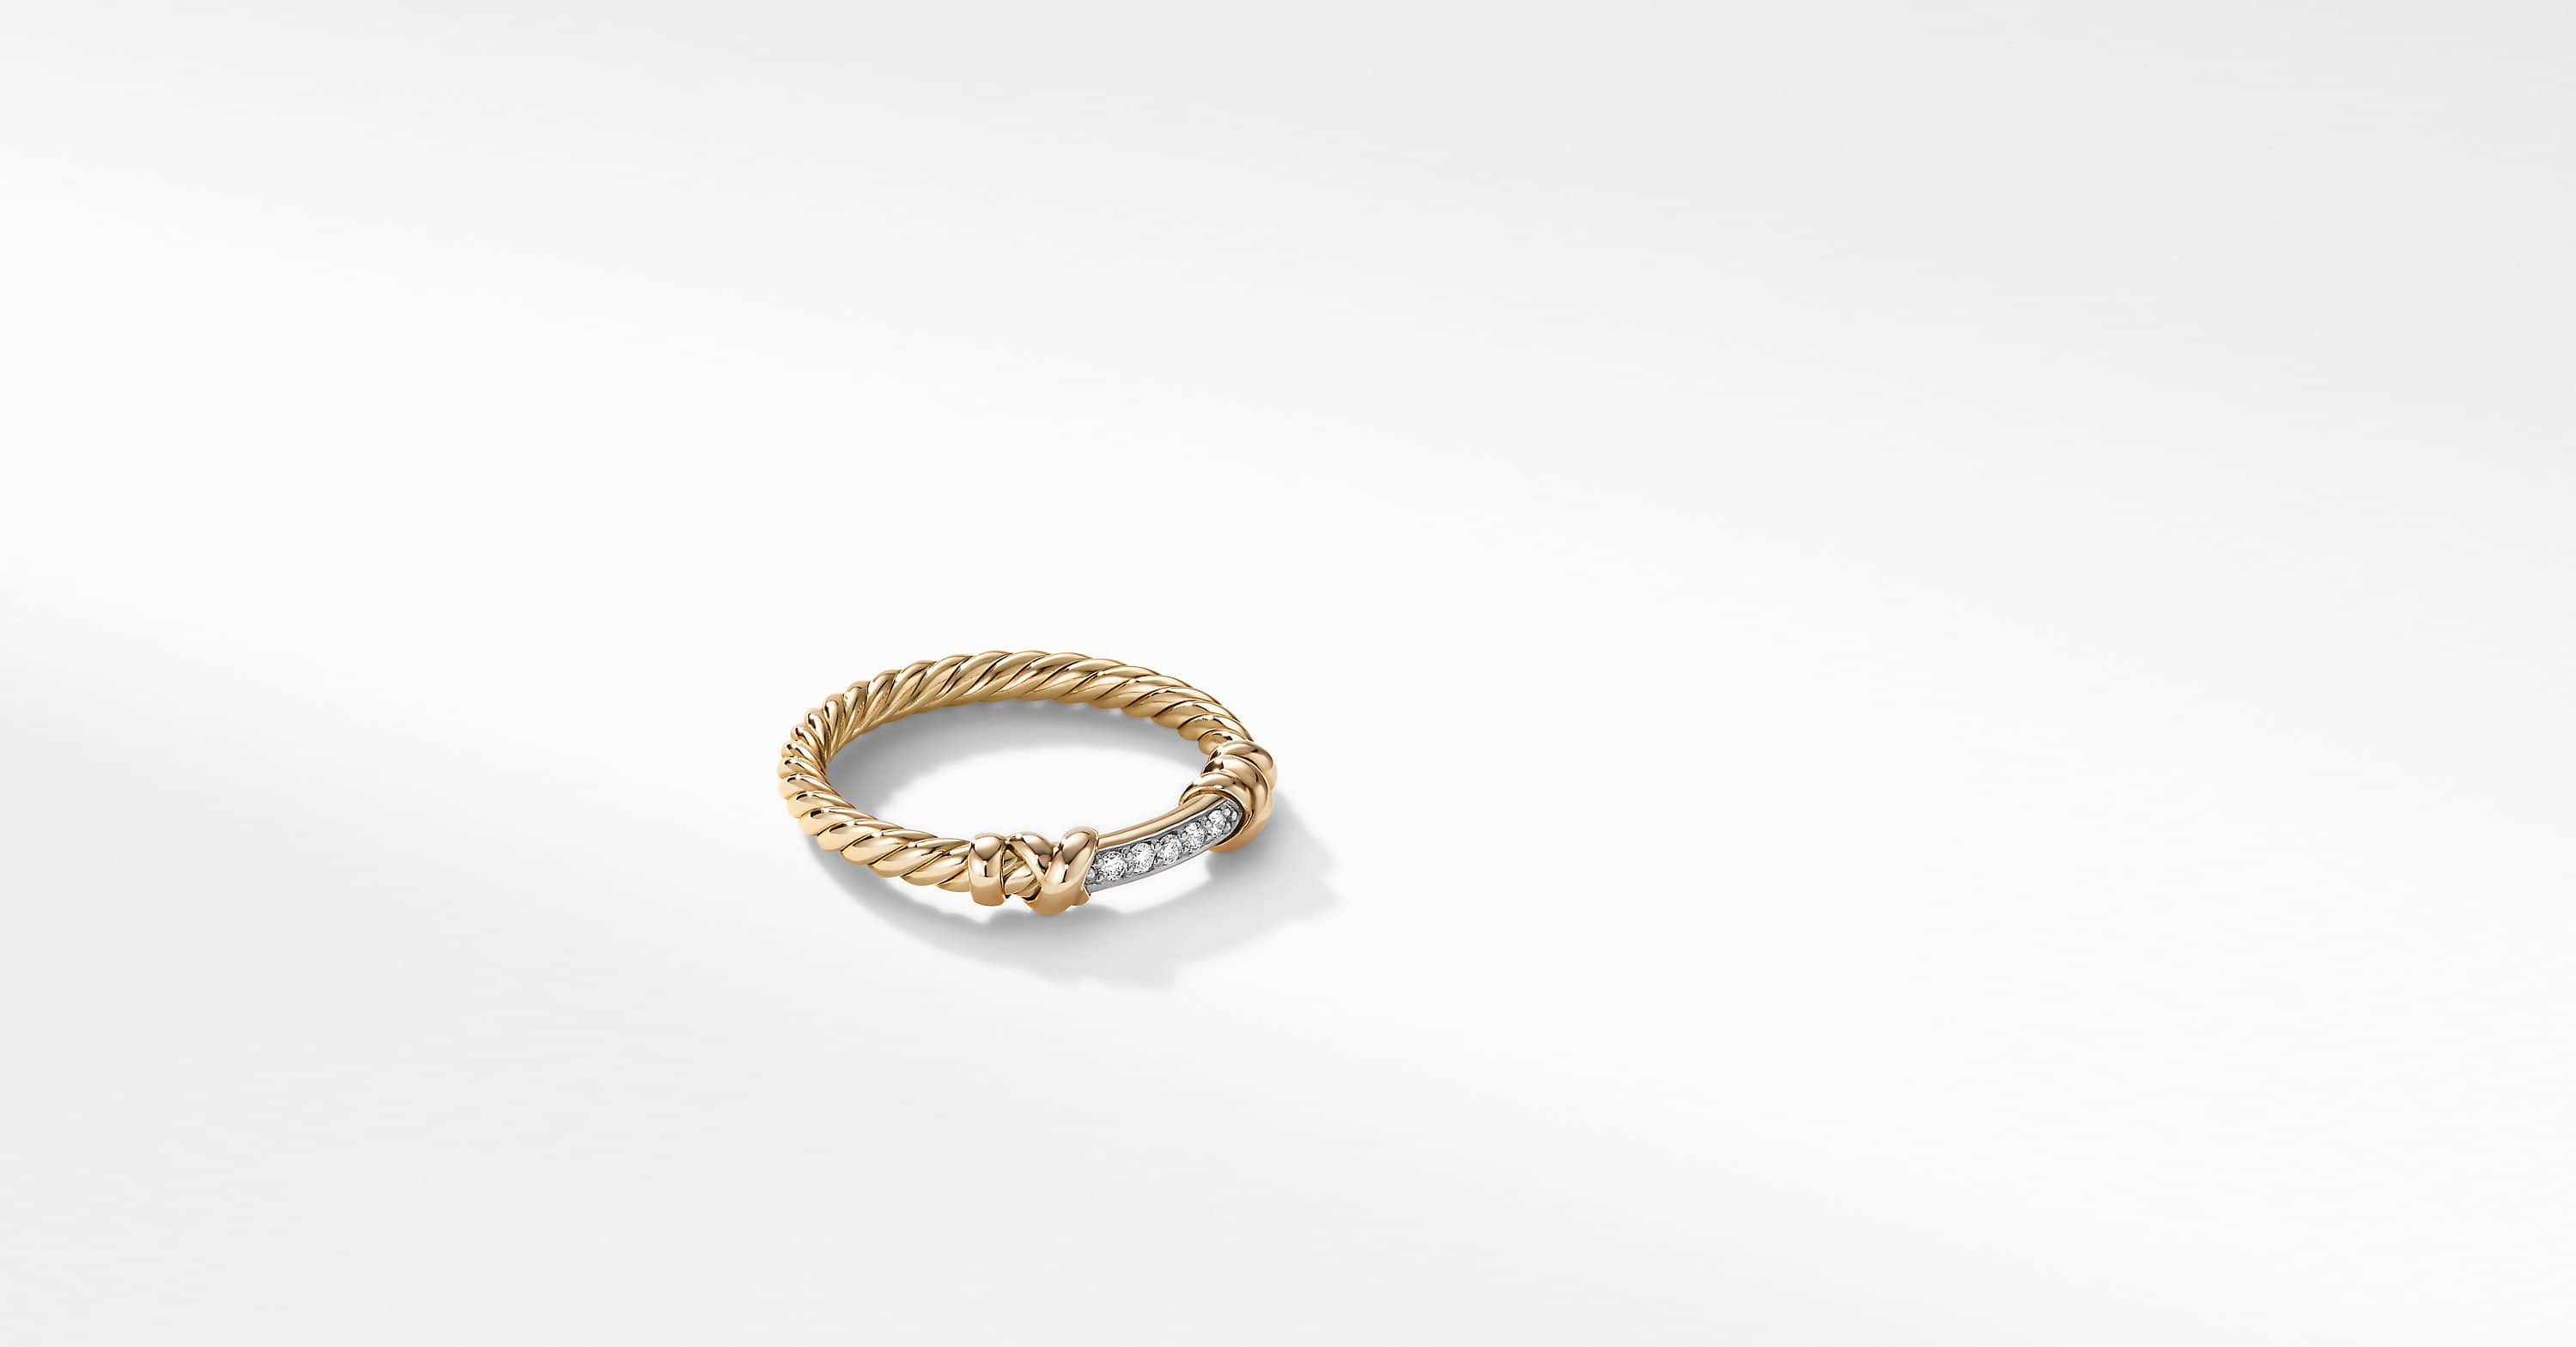 Petite Helena Wrap Ring in 18K Yellow Gold with Diamonds